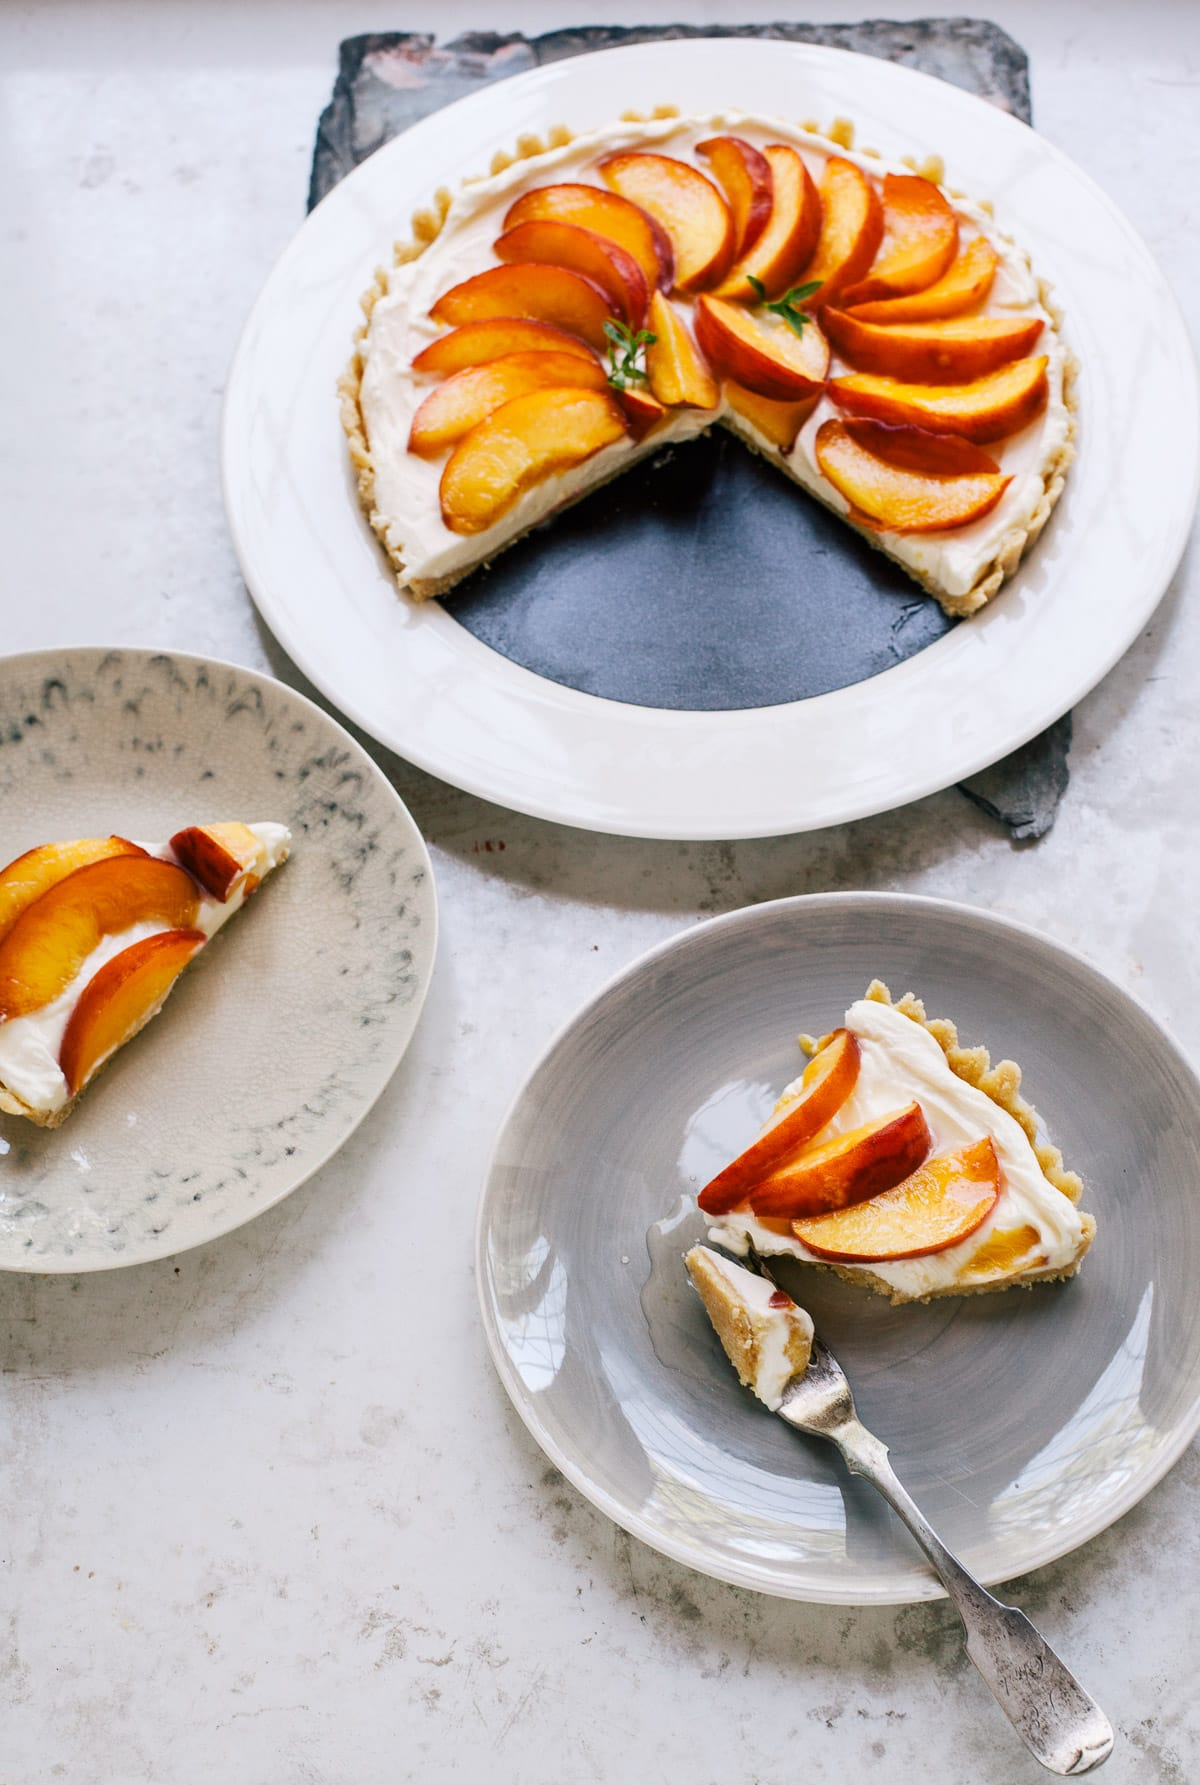 A cream cheese tart topped with wedges of fresh peaches on plates.